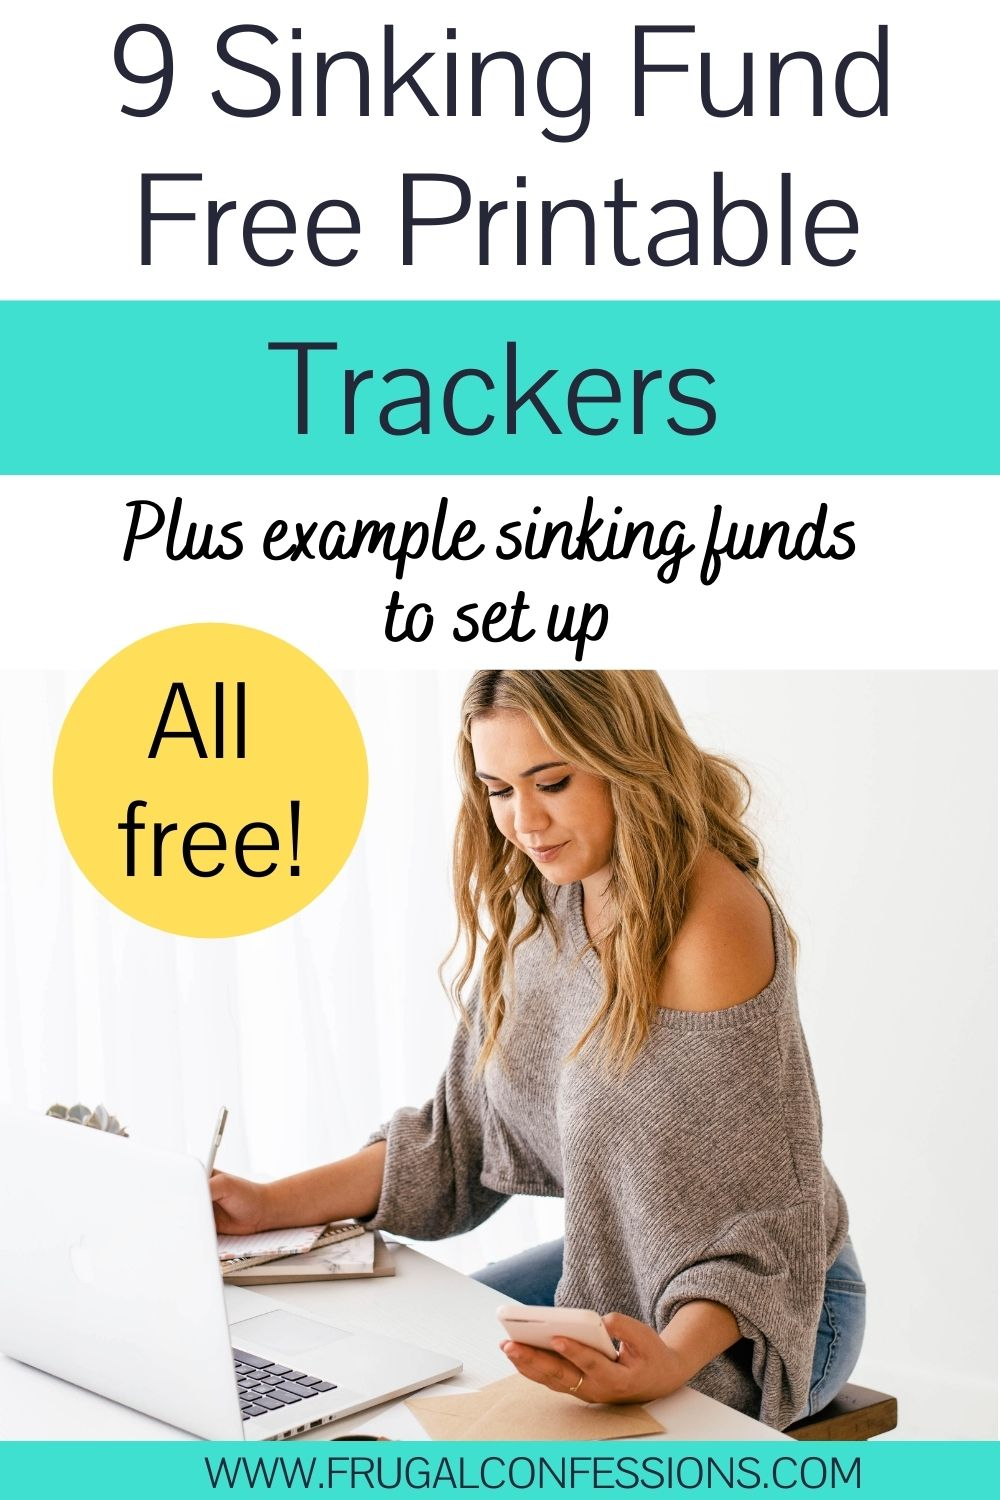 """woman at desk with calculator on phone, text overlay """"9 sinking funds free printable trackers - plus examples"""""""